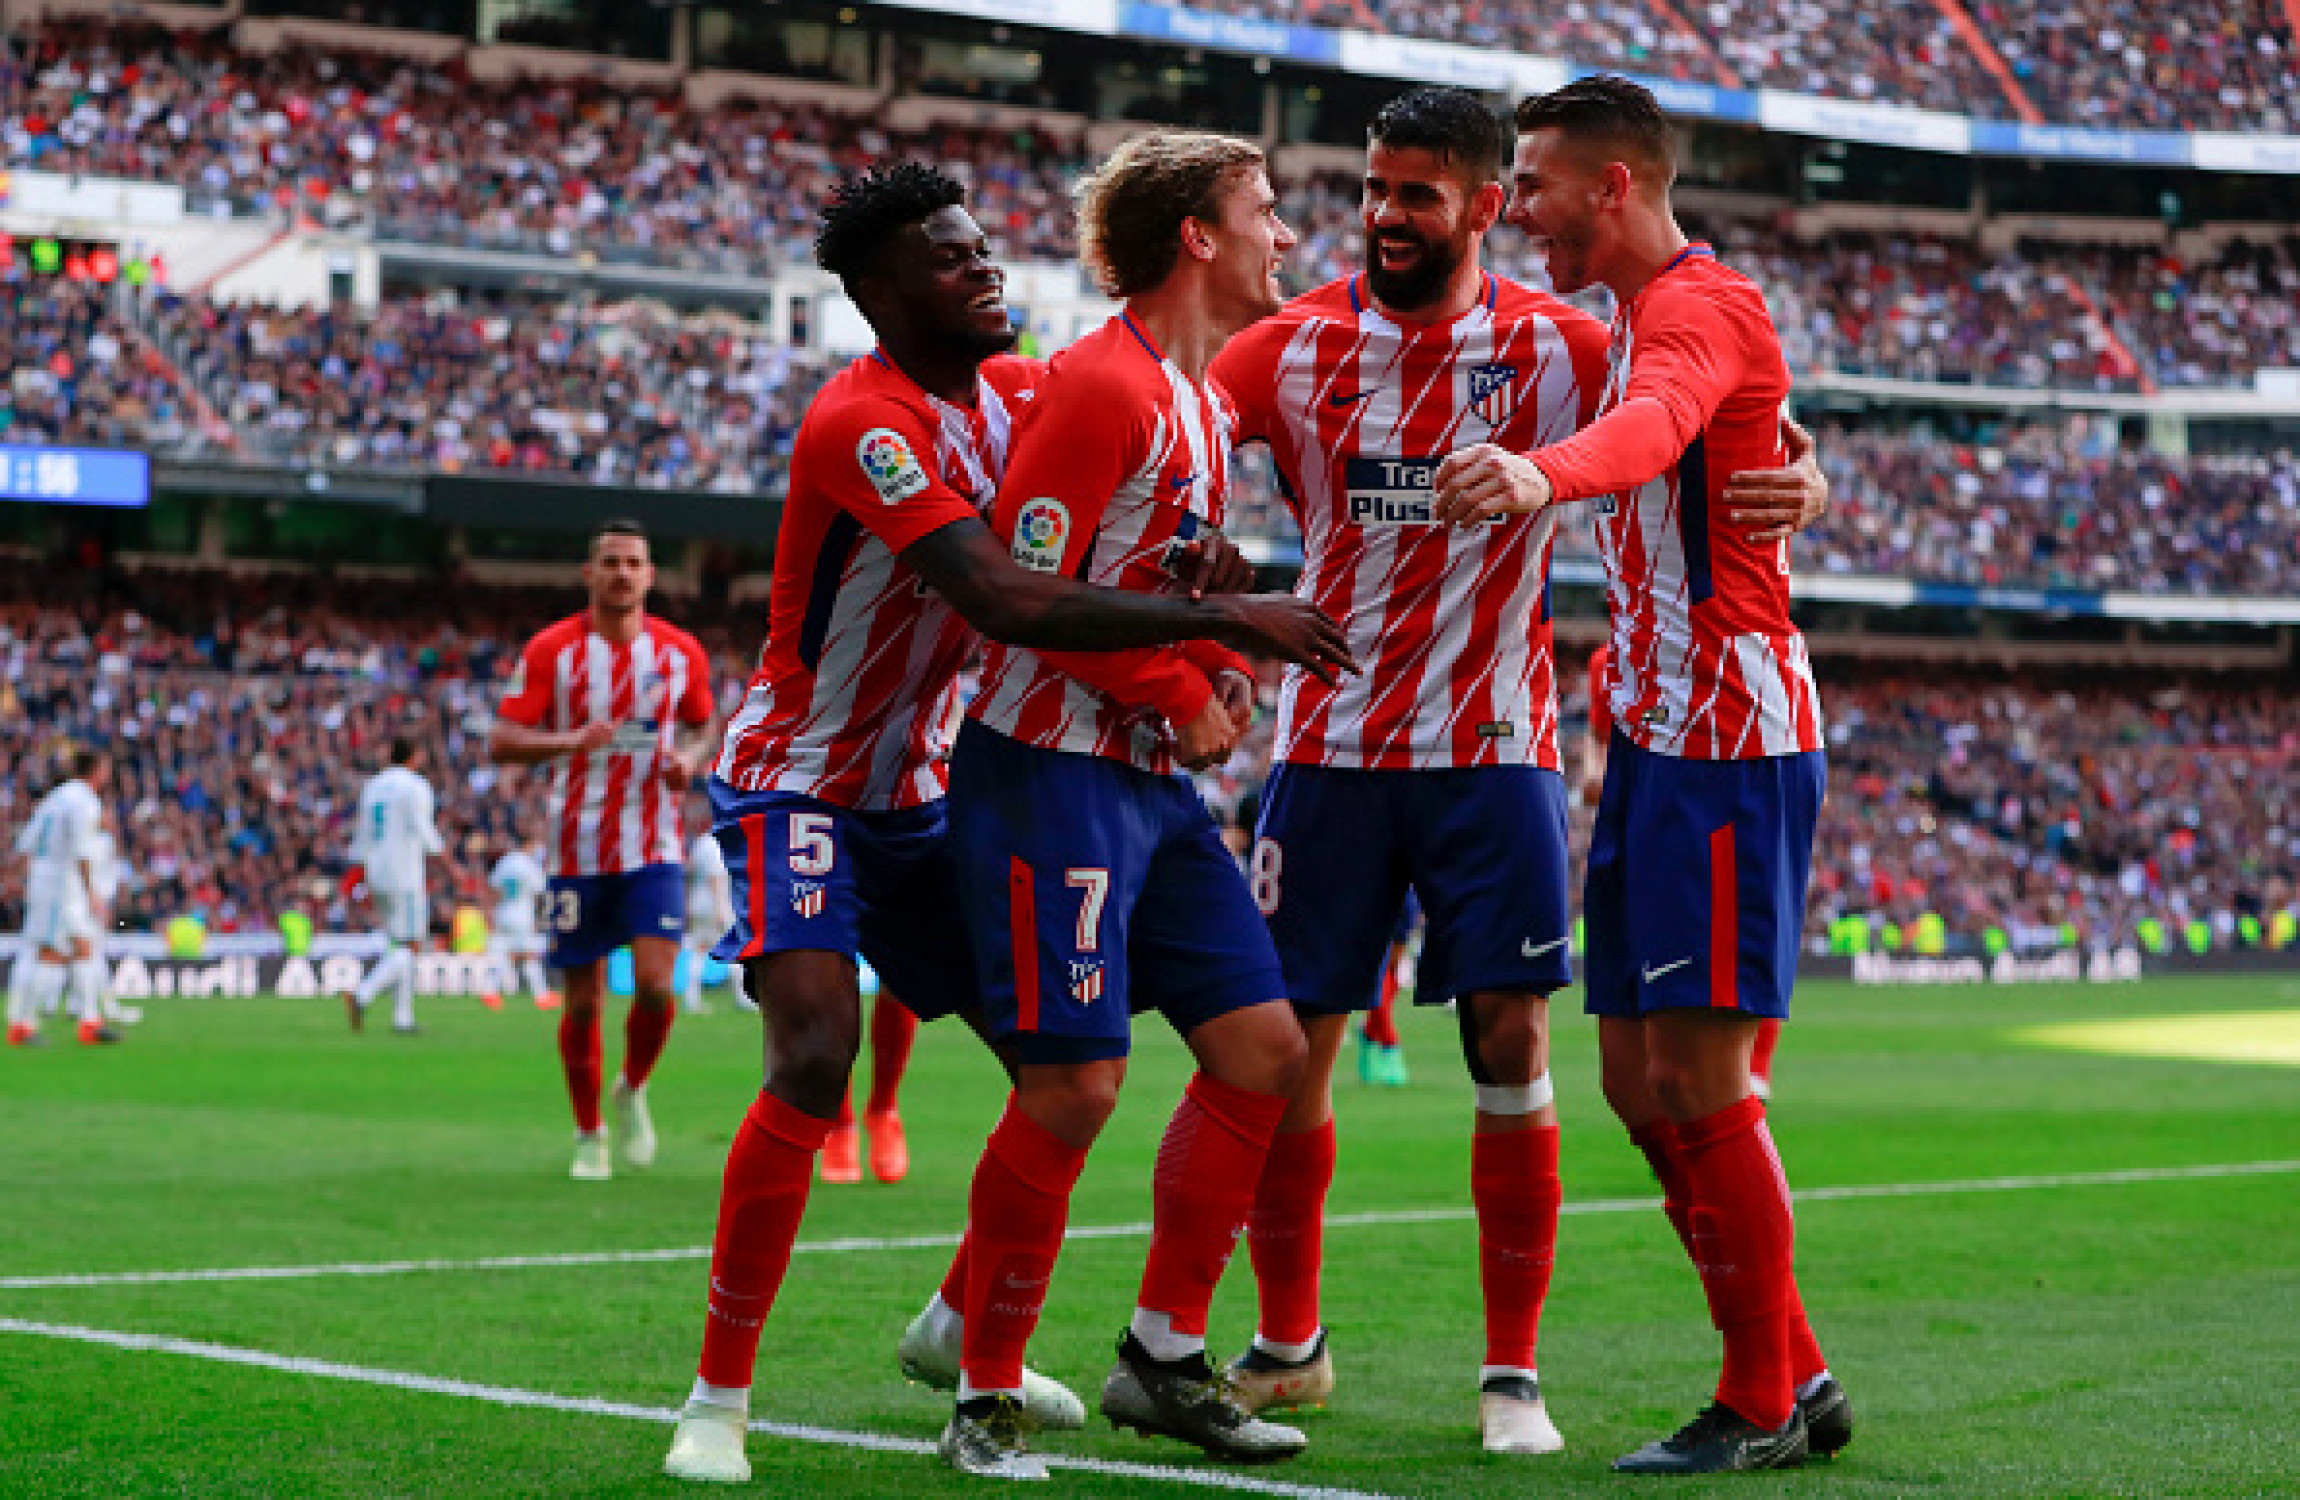 Atletico Madrid's Diego Simeone hails Antoine Griezmann after derbi leveller